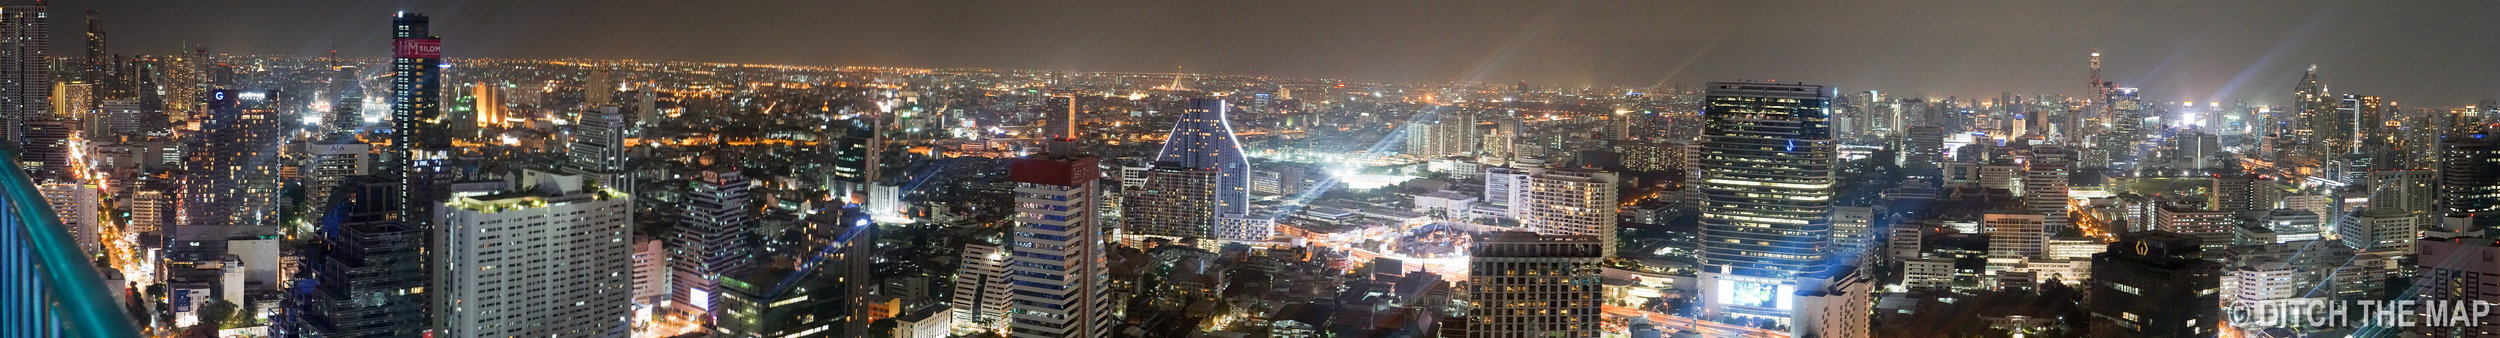 View from Rooftop Bar in Bangkok, Thailand